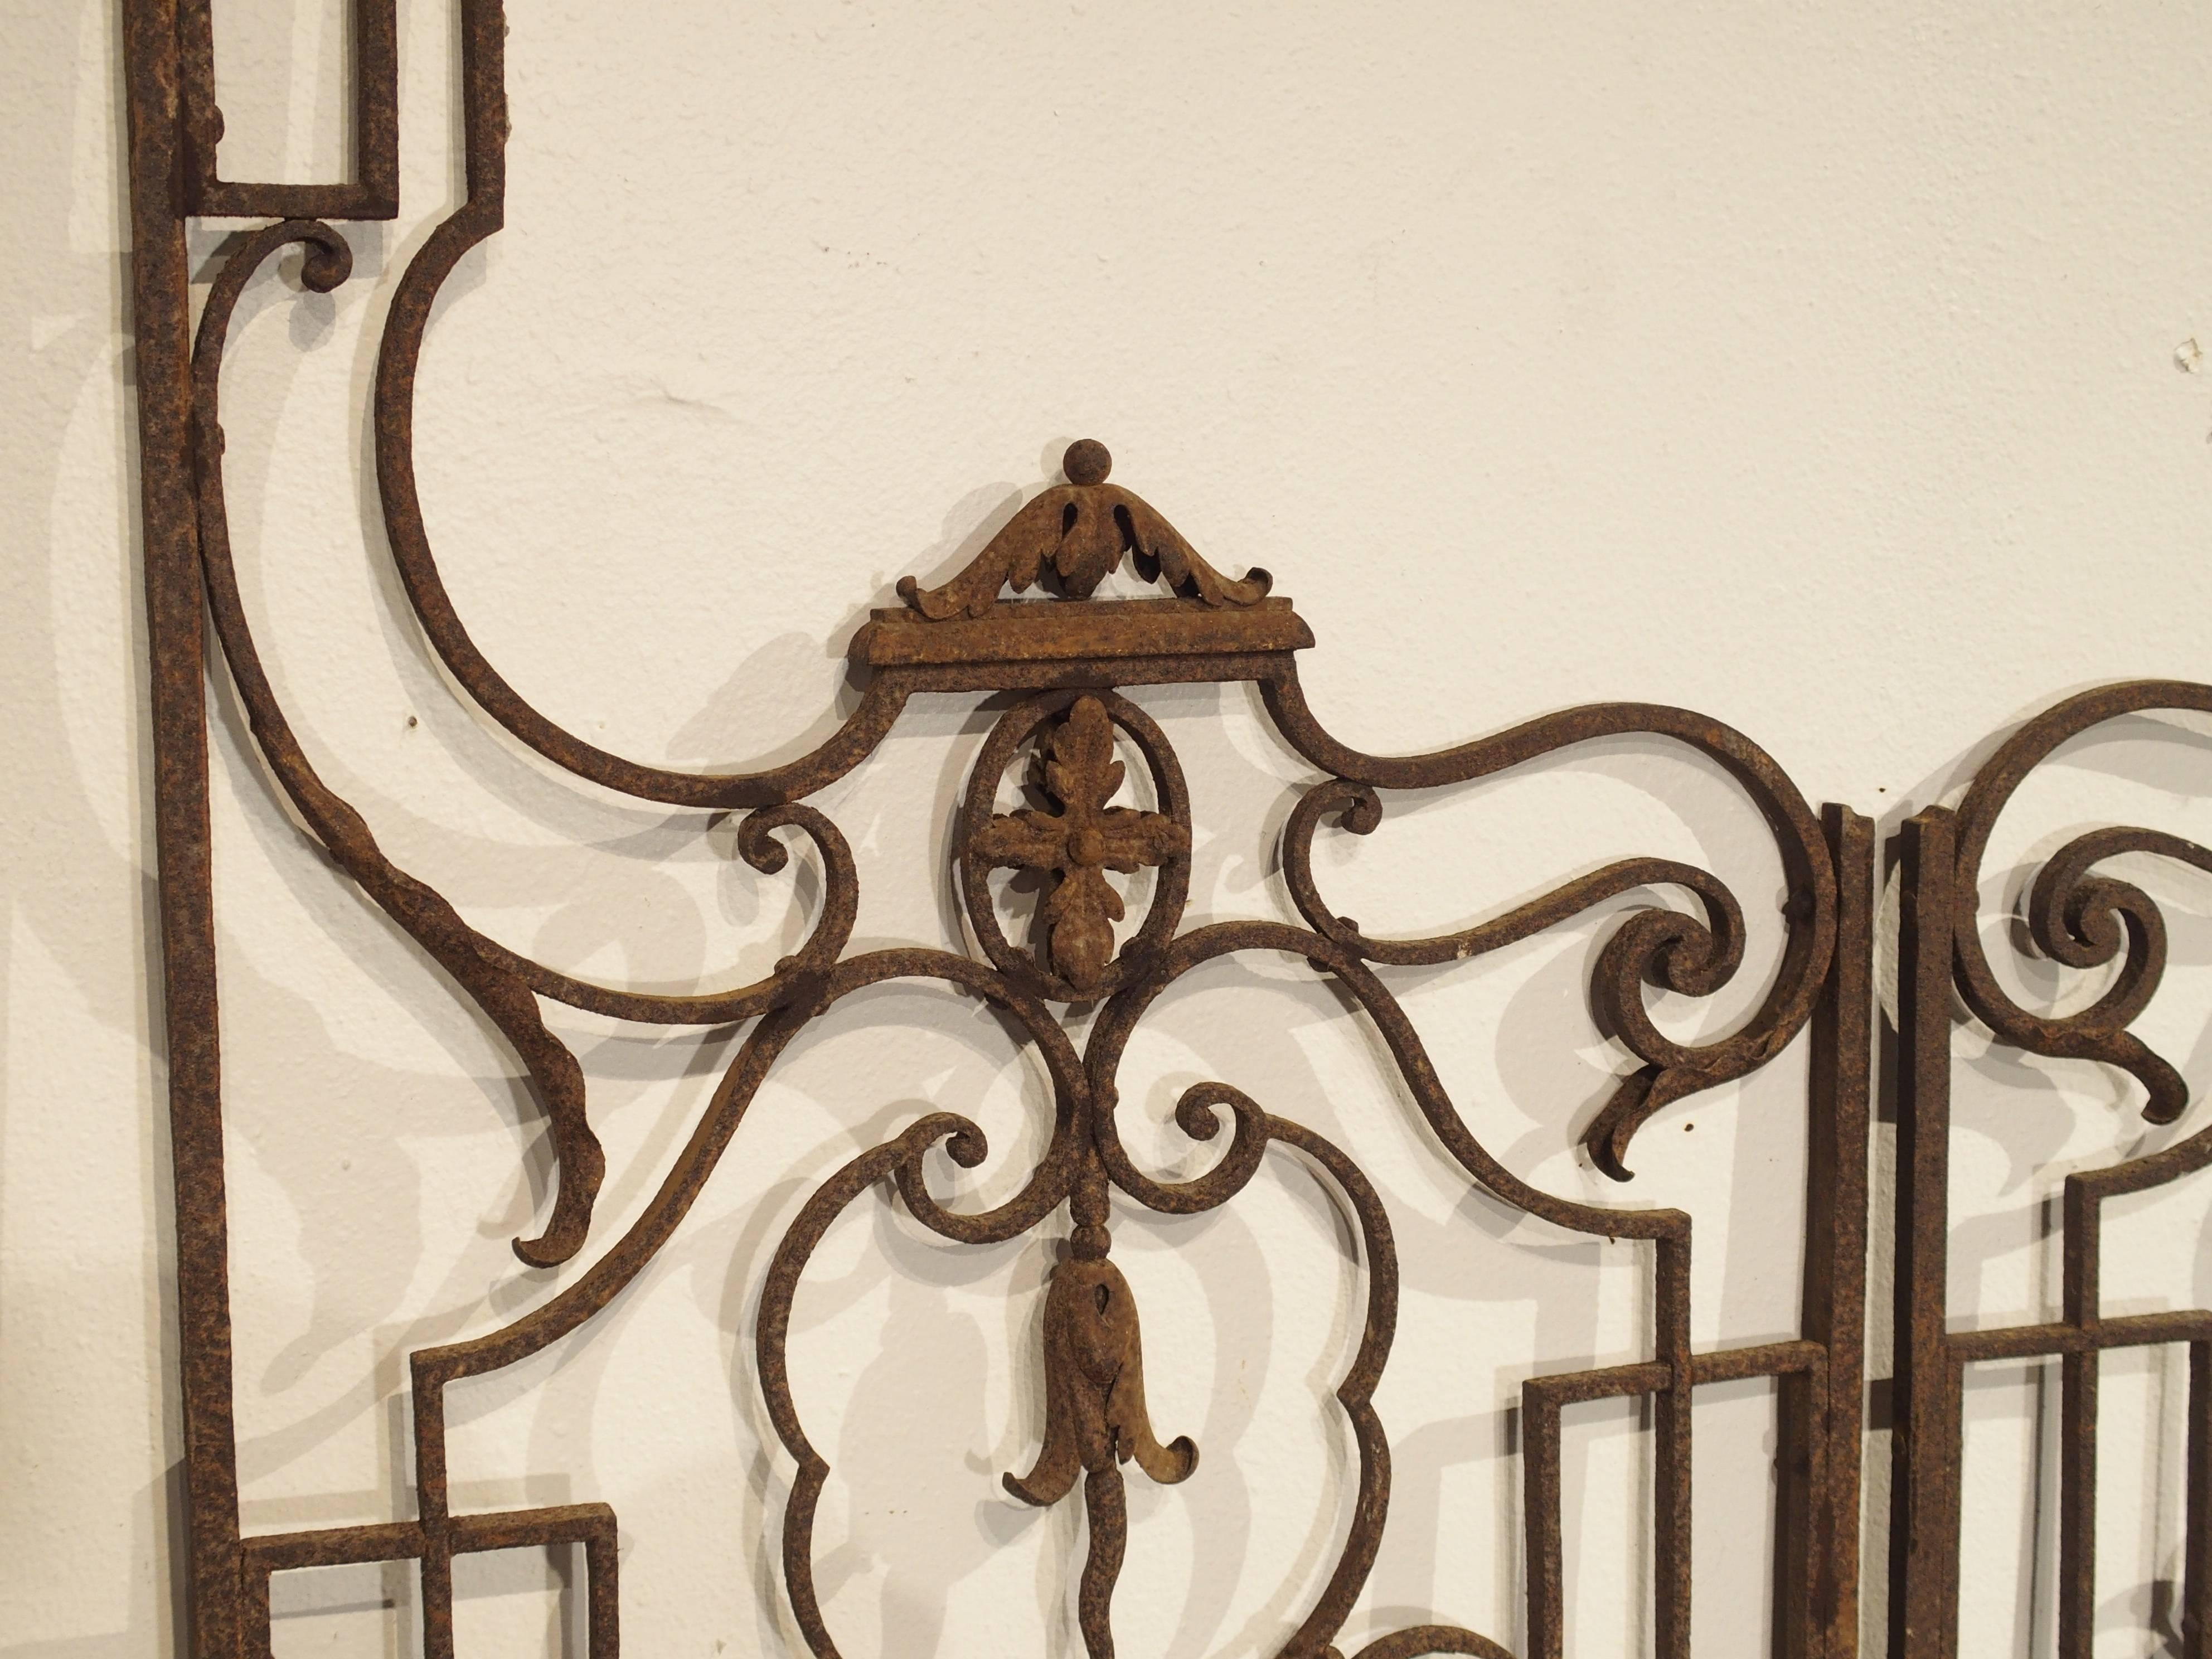 Superieur This Elegant Pair Of Antique Garden Gates From France Date To The End Of  The 19th